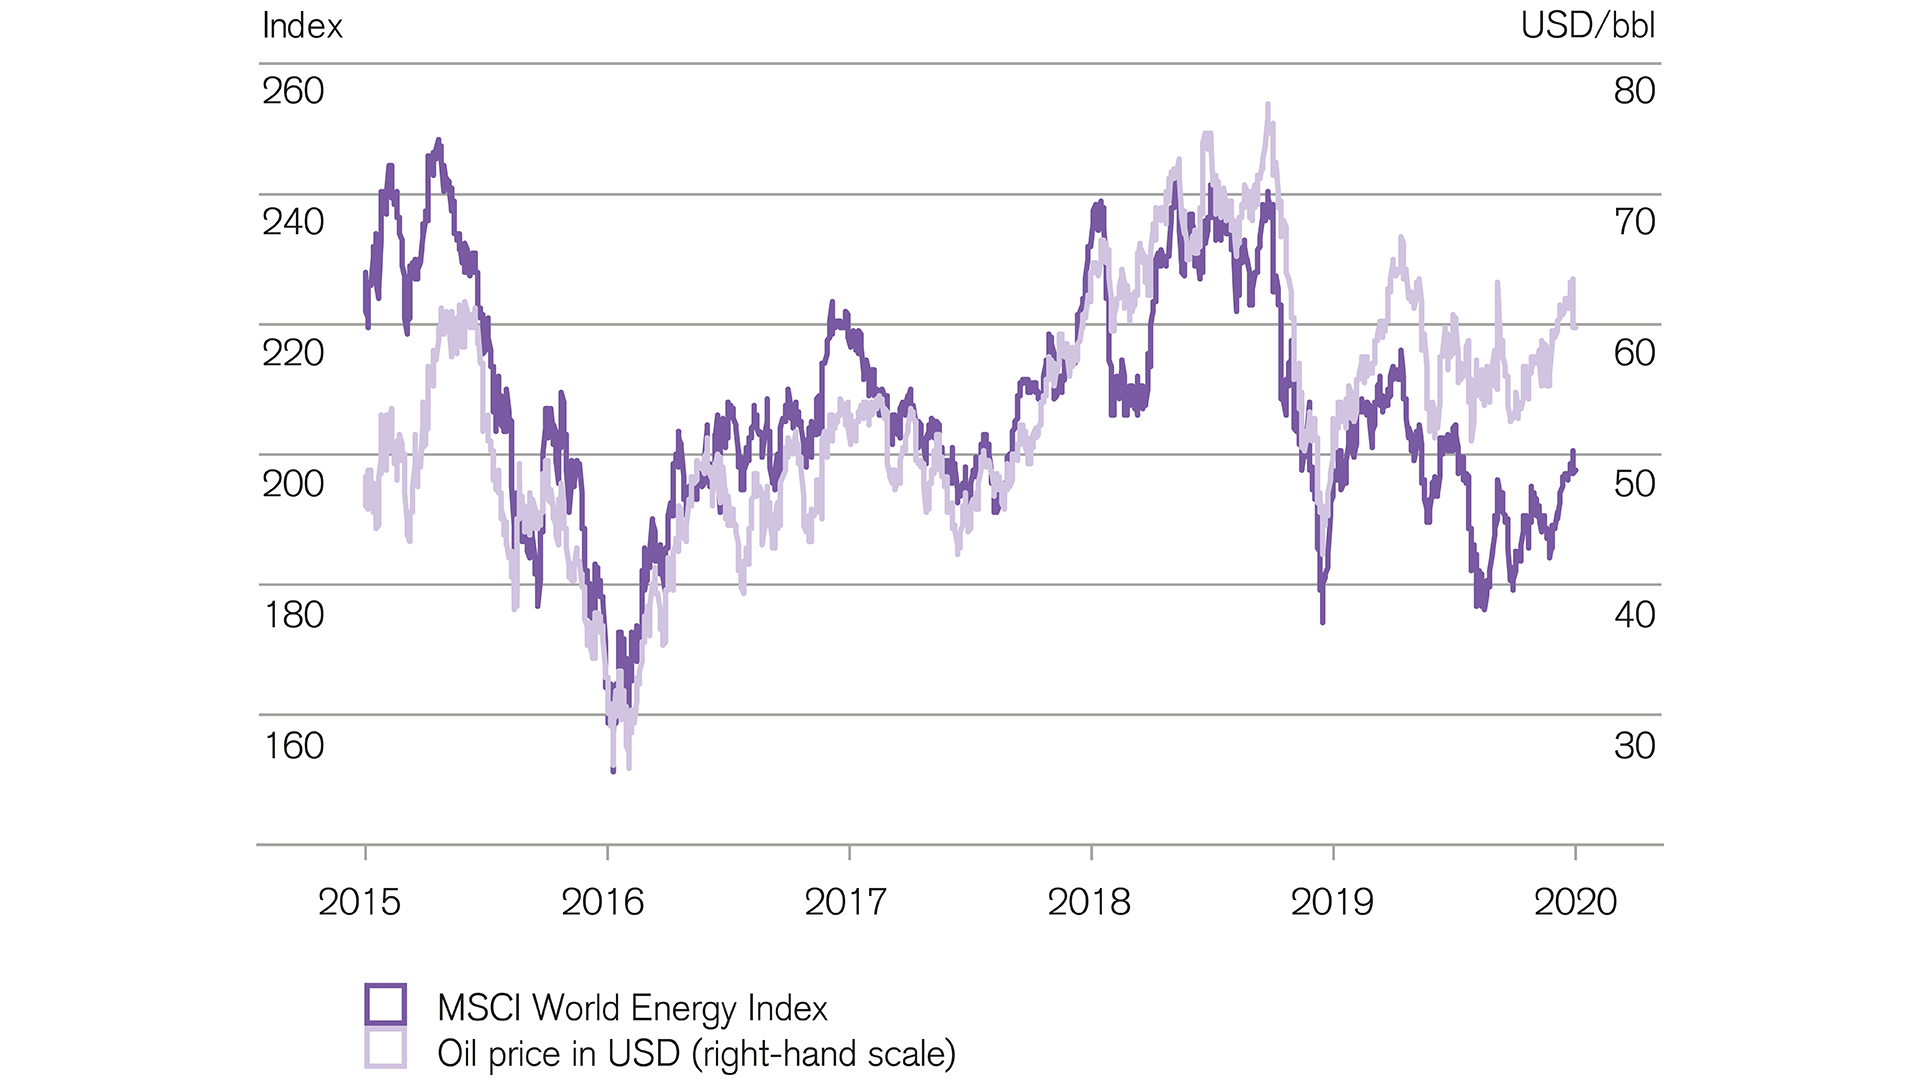 Equities in the energy sector have recovery potential